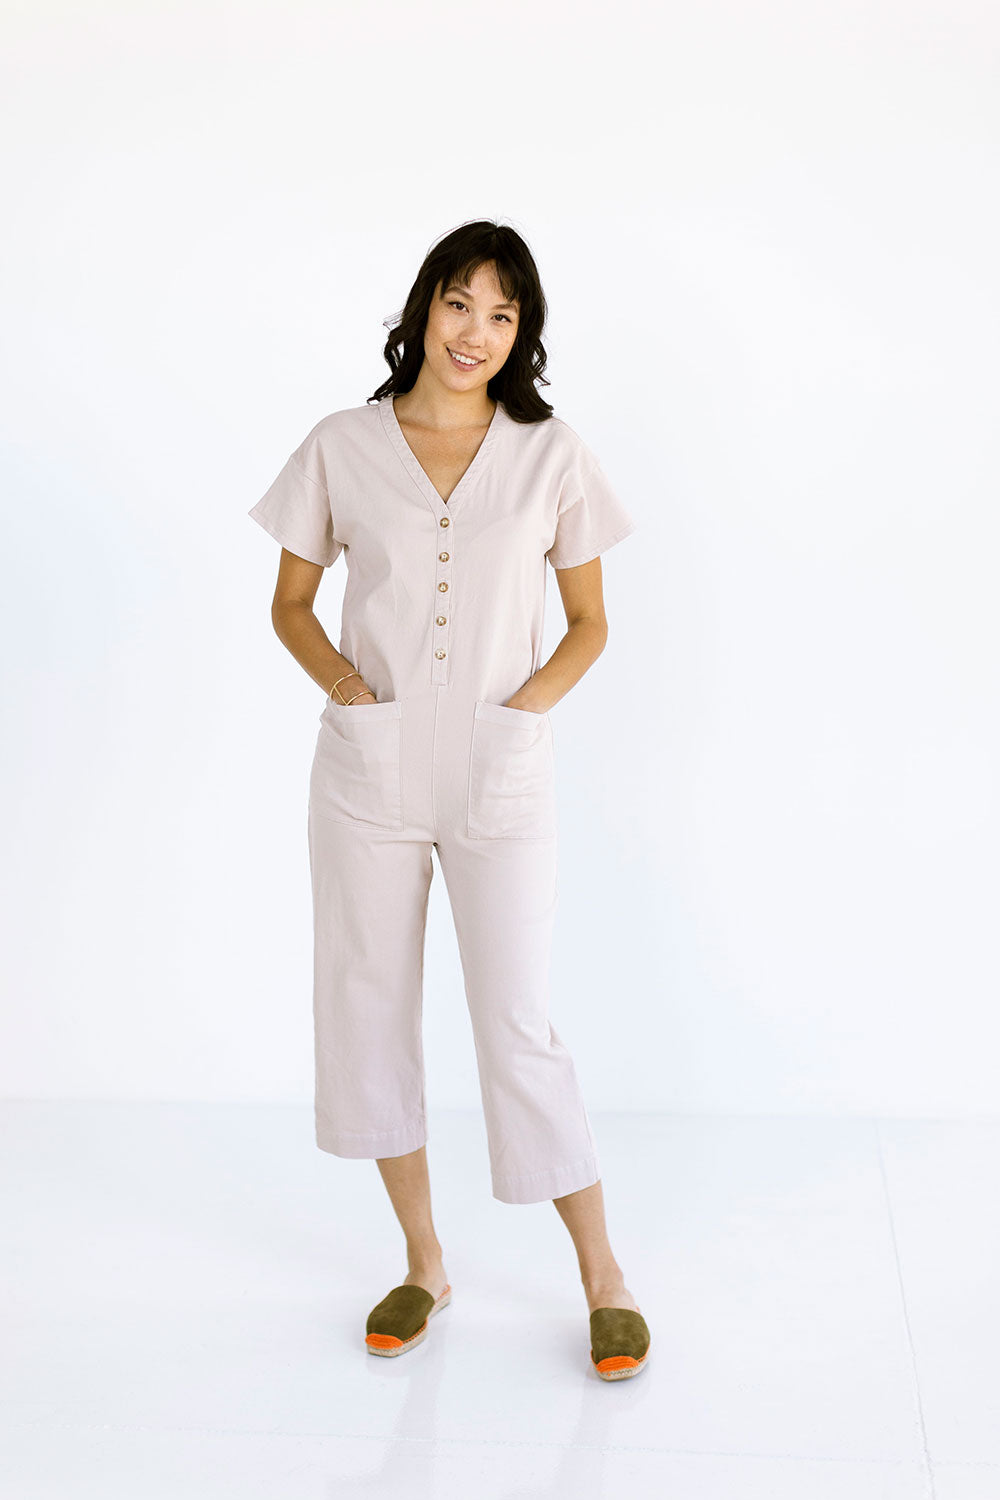 The Coverall in Mushroom